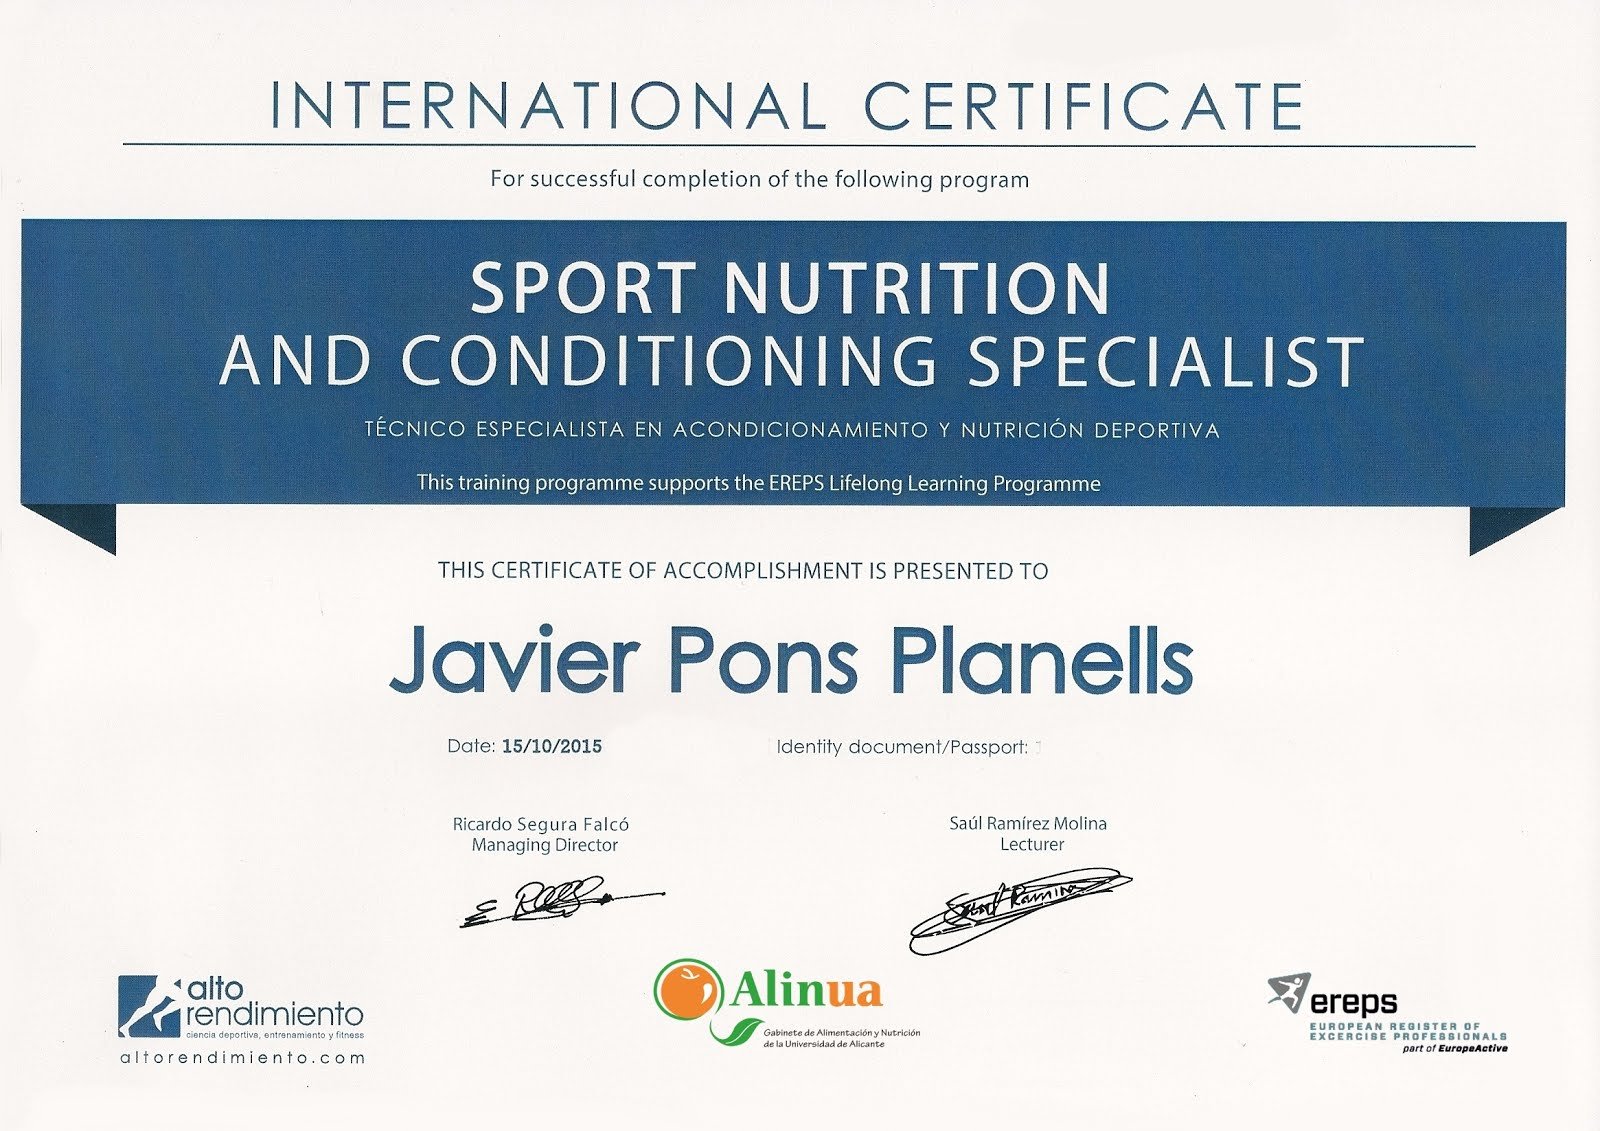 INTERNATIONAL CERTIFICATE SPORT NUTRITION